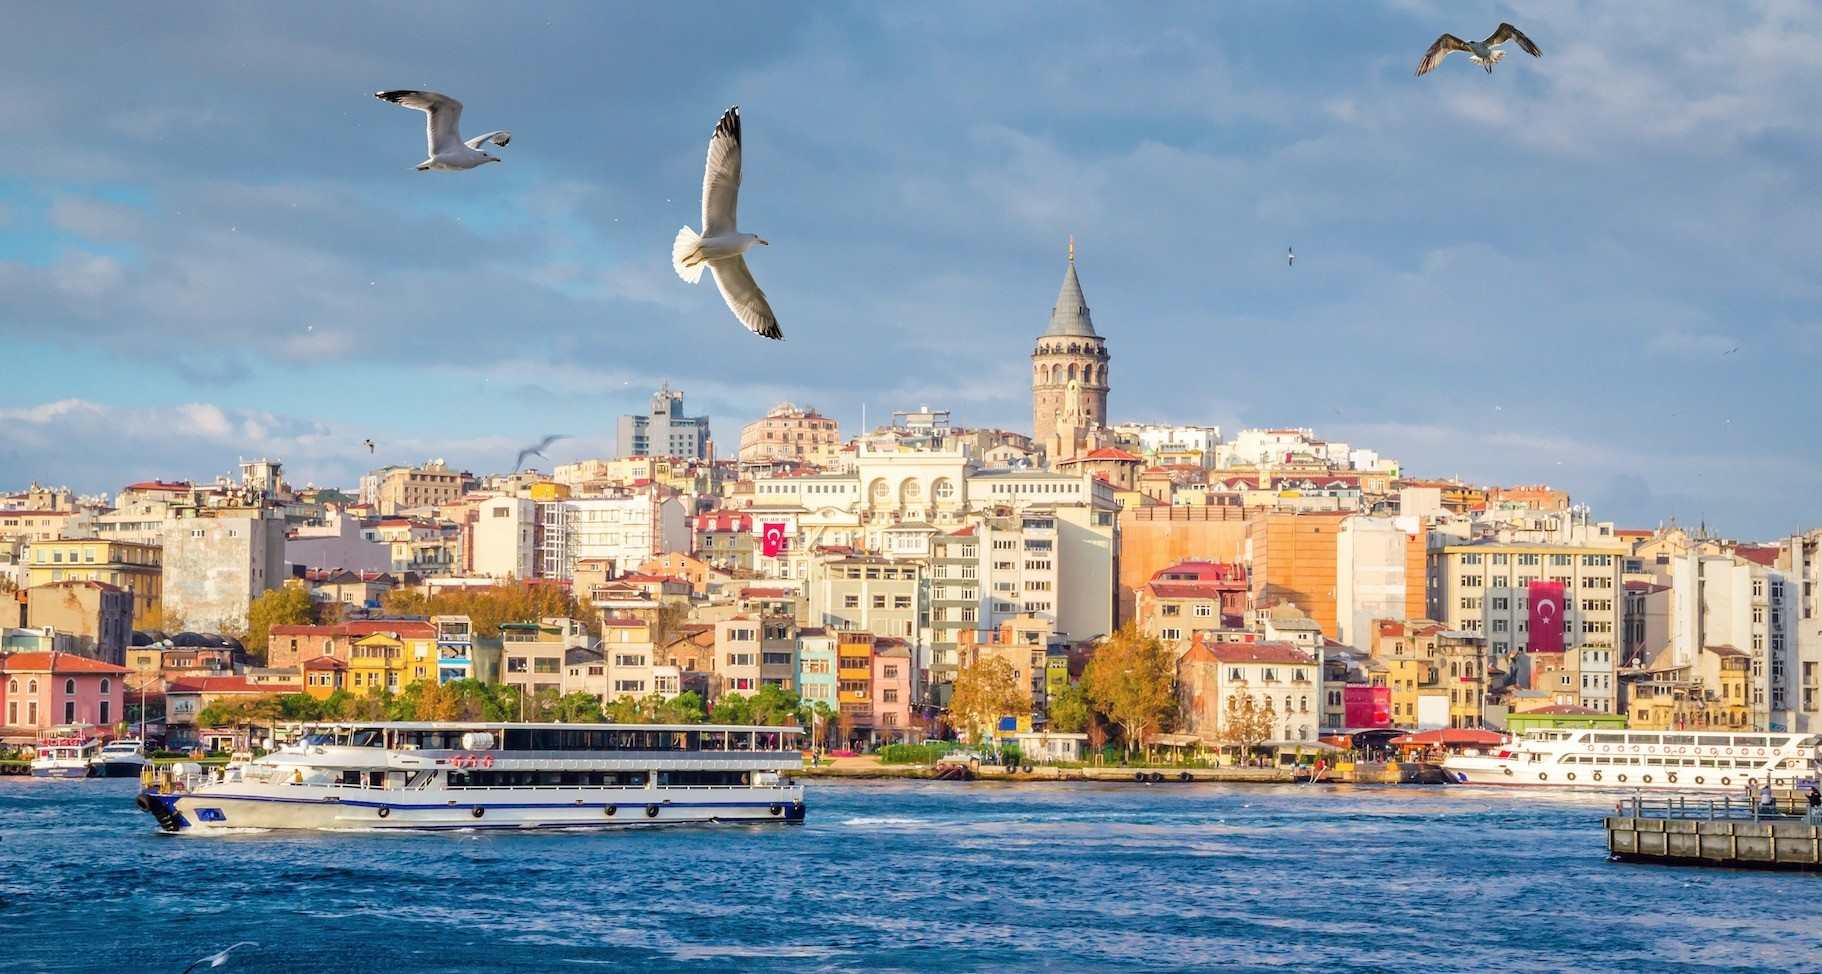 Germans topped the list of foreign visitors coming to Istanbul last year, at more than 1 million.